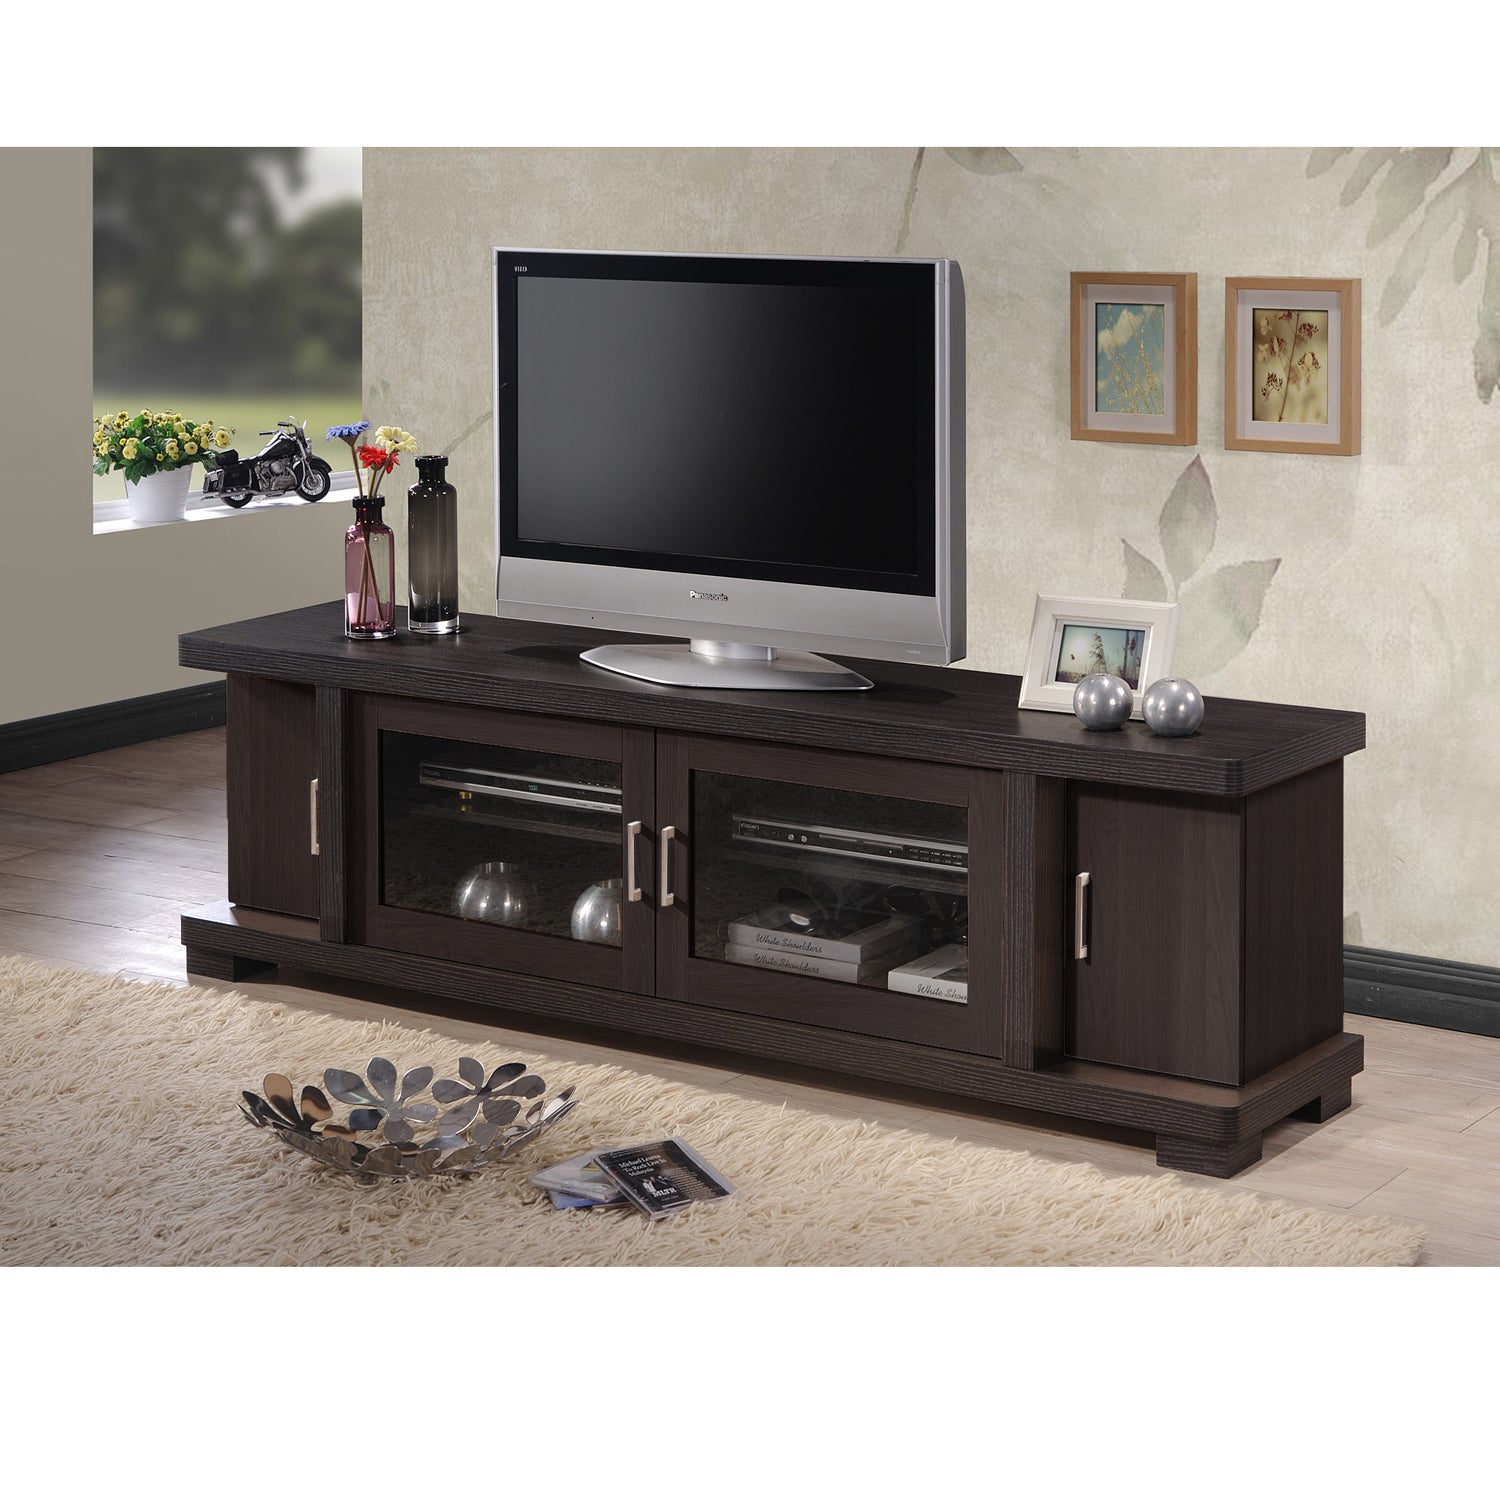 Shop Porch Den Kittery Contemporary 70 Inch Dark Brown Wood Tv